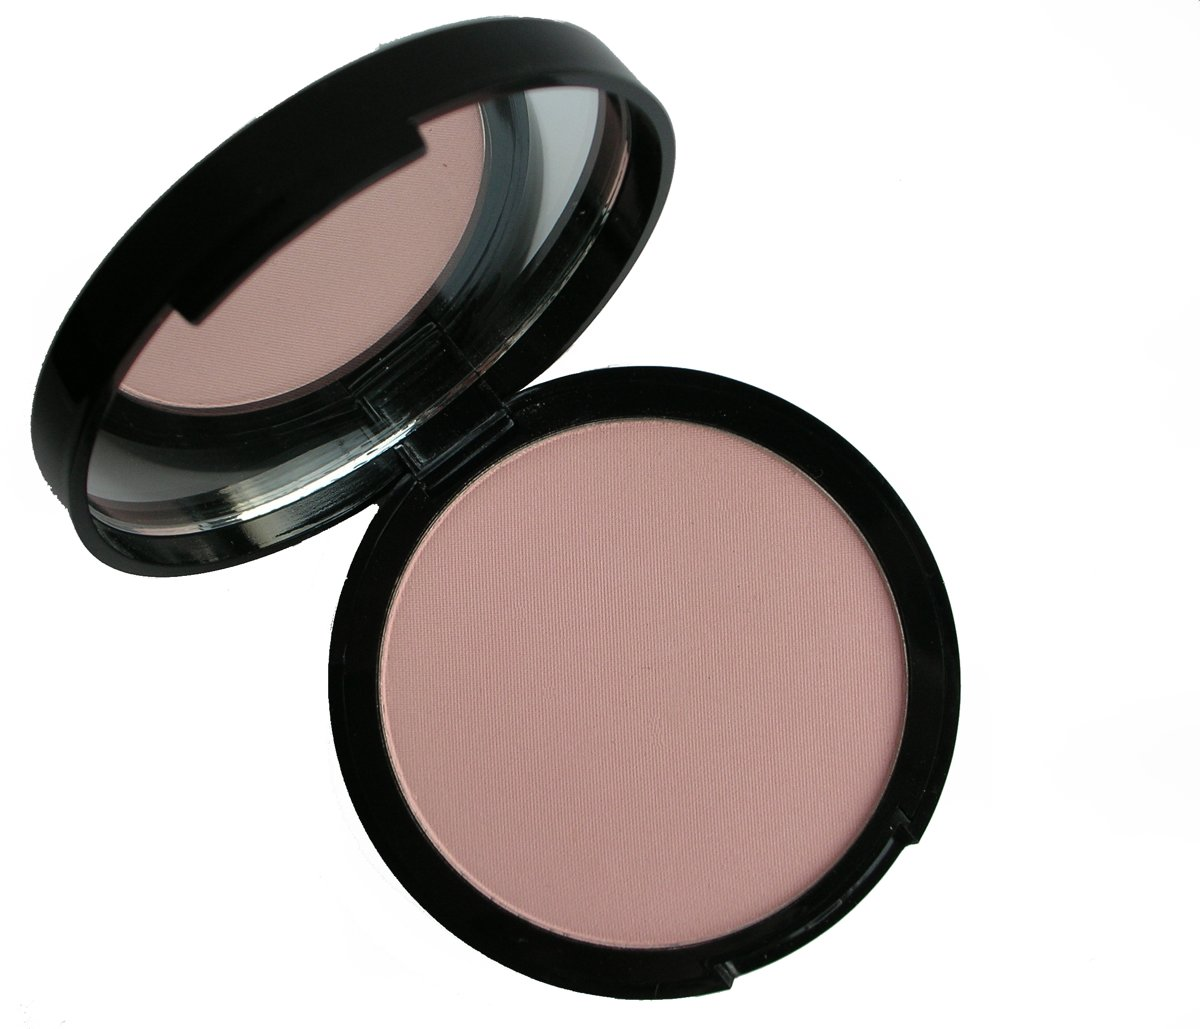 Ariane Inden Illuminating Finishing Powder - Rosey - Bronzingpoeder & Blush